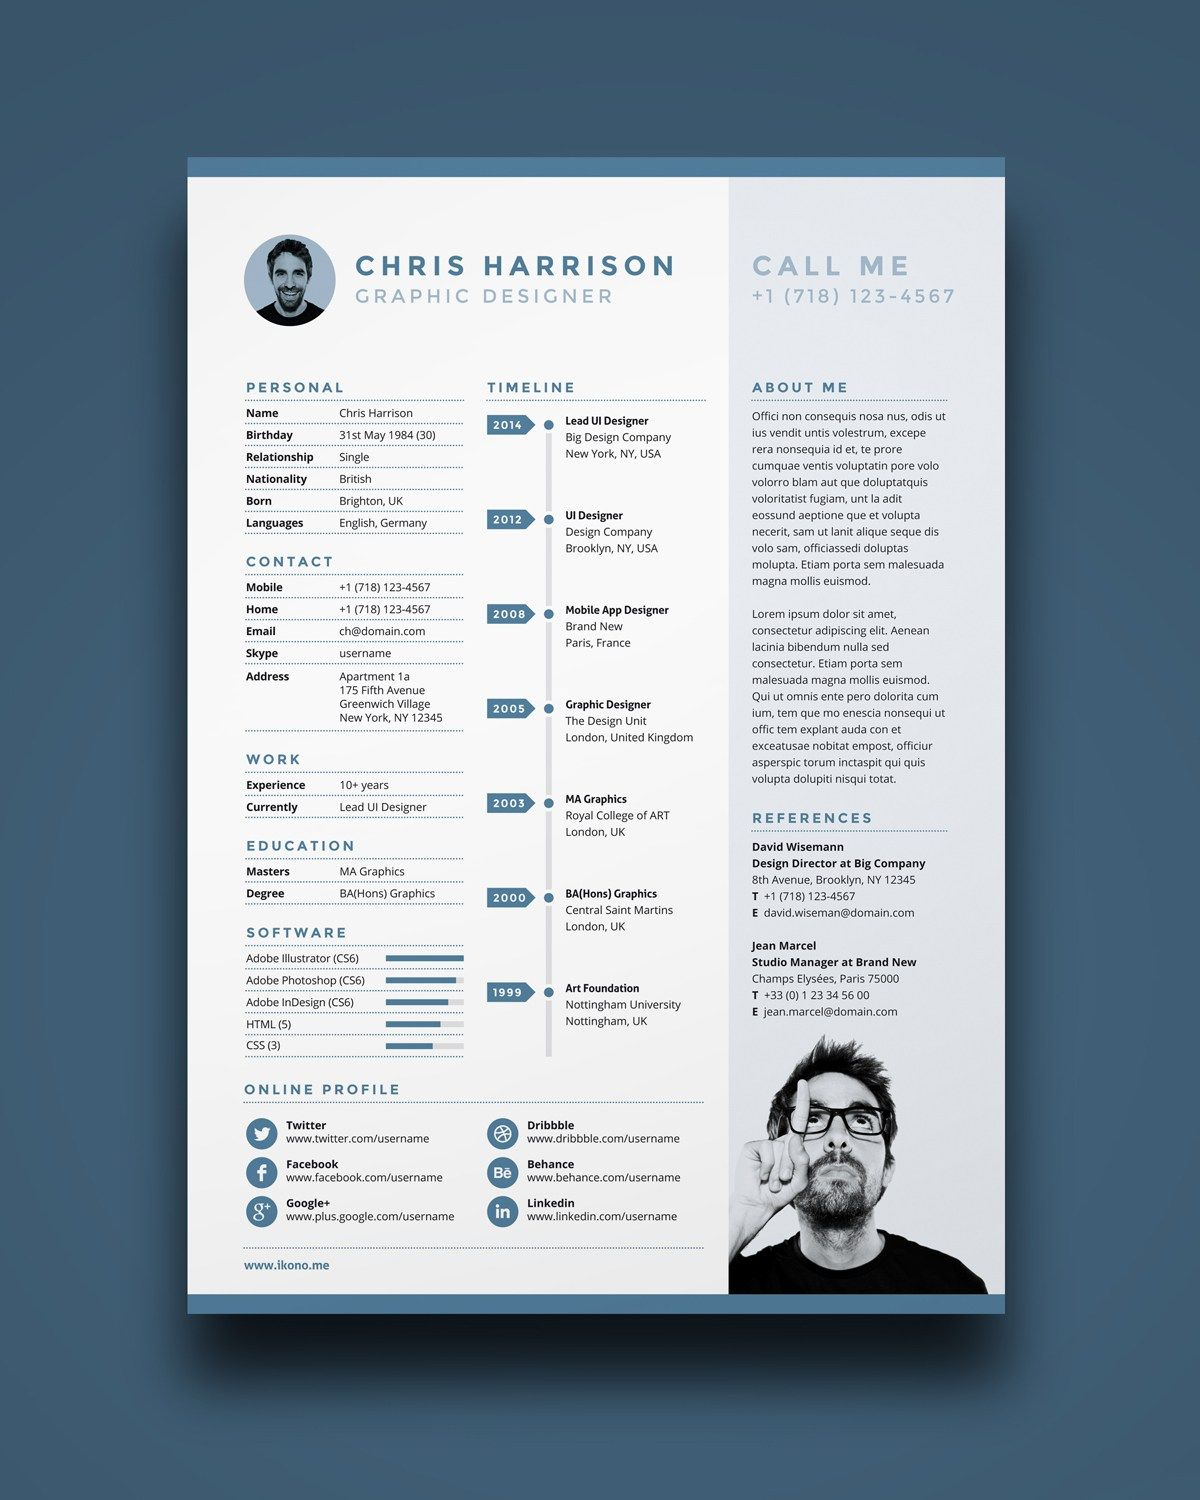 Free Resume is a one page resume template you can download for FREE